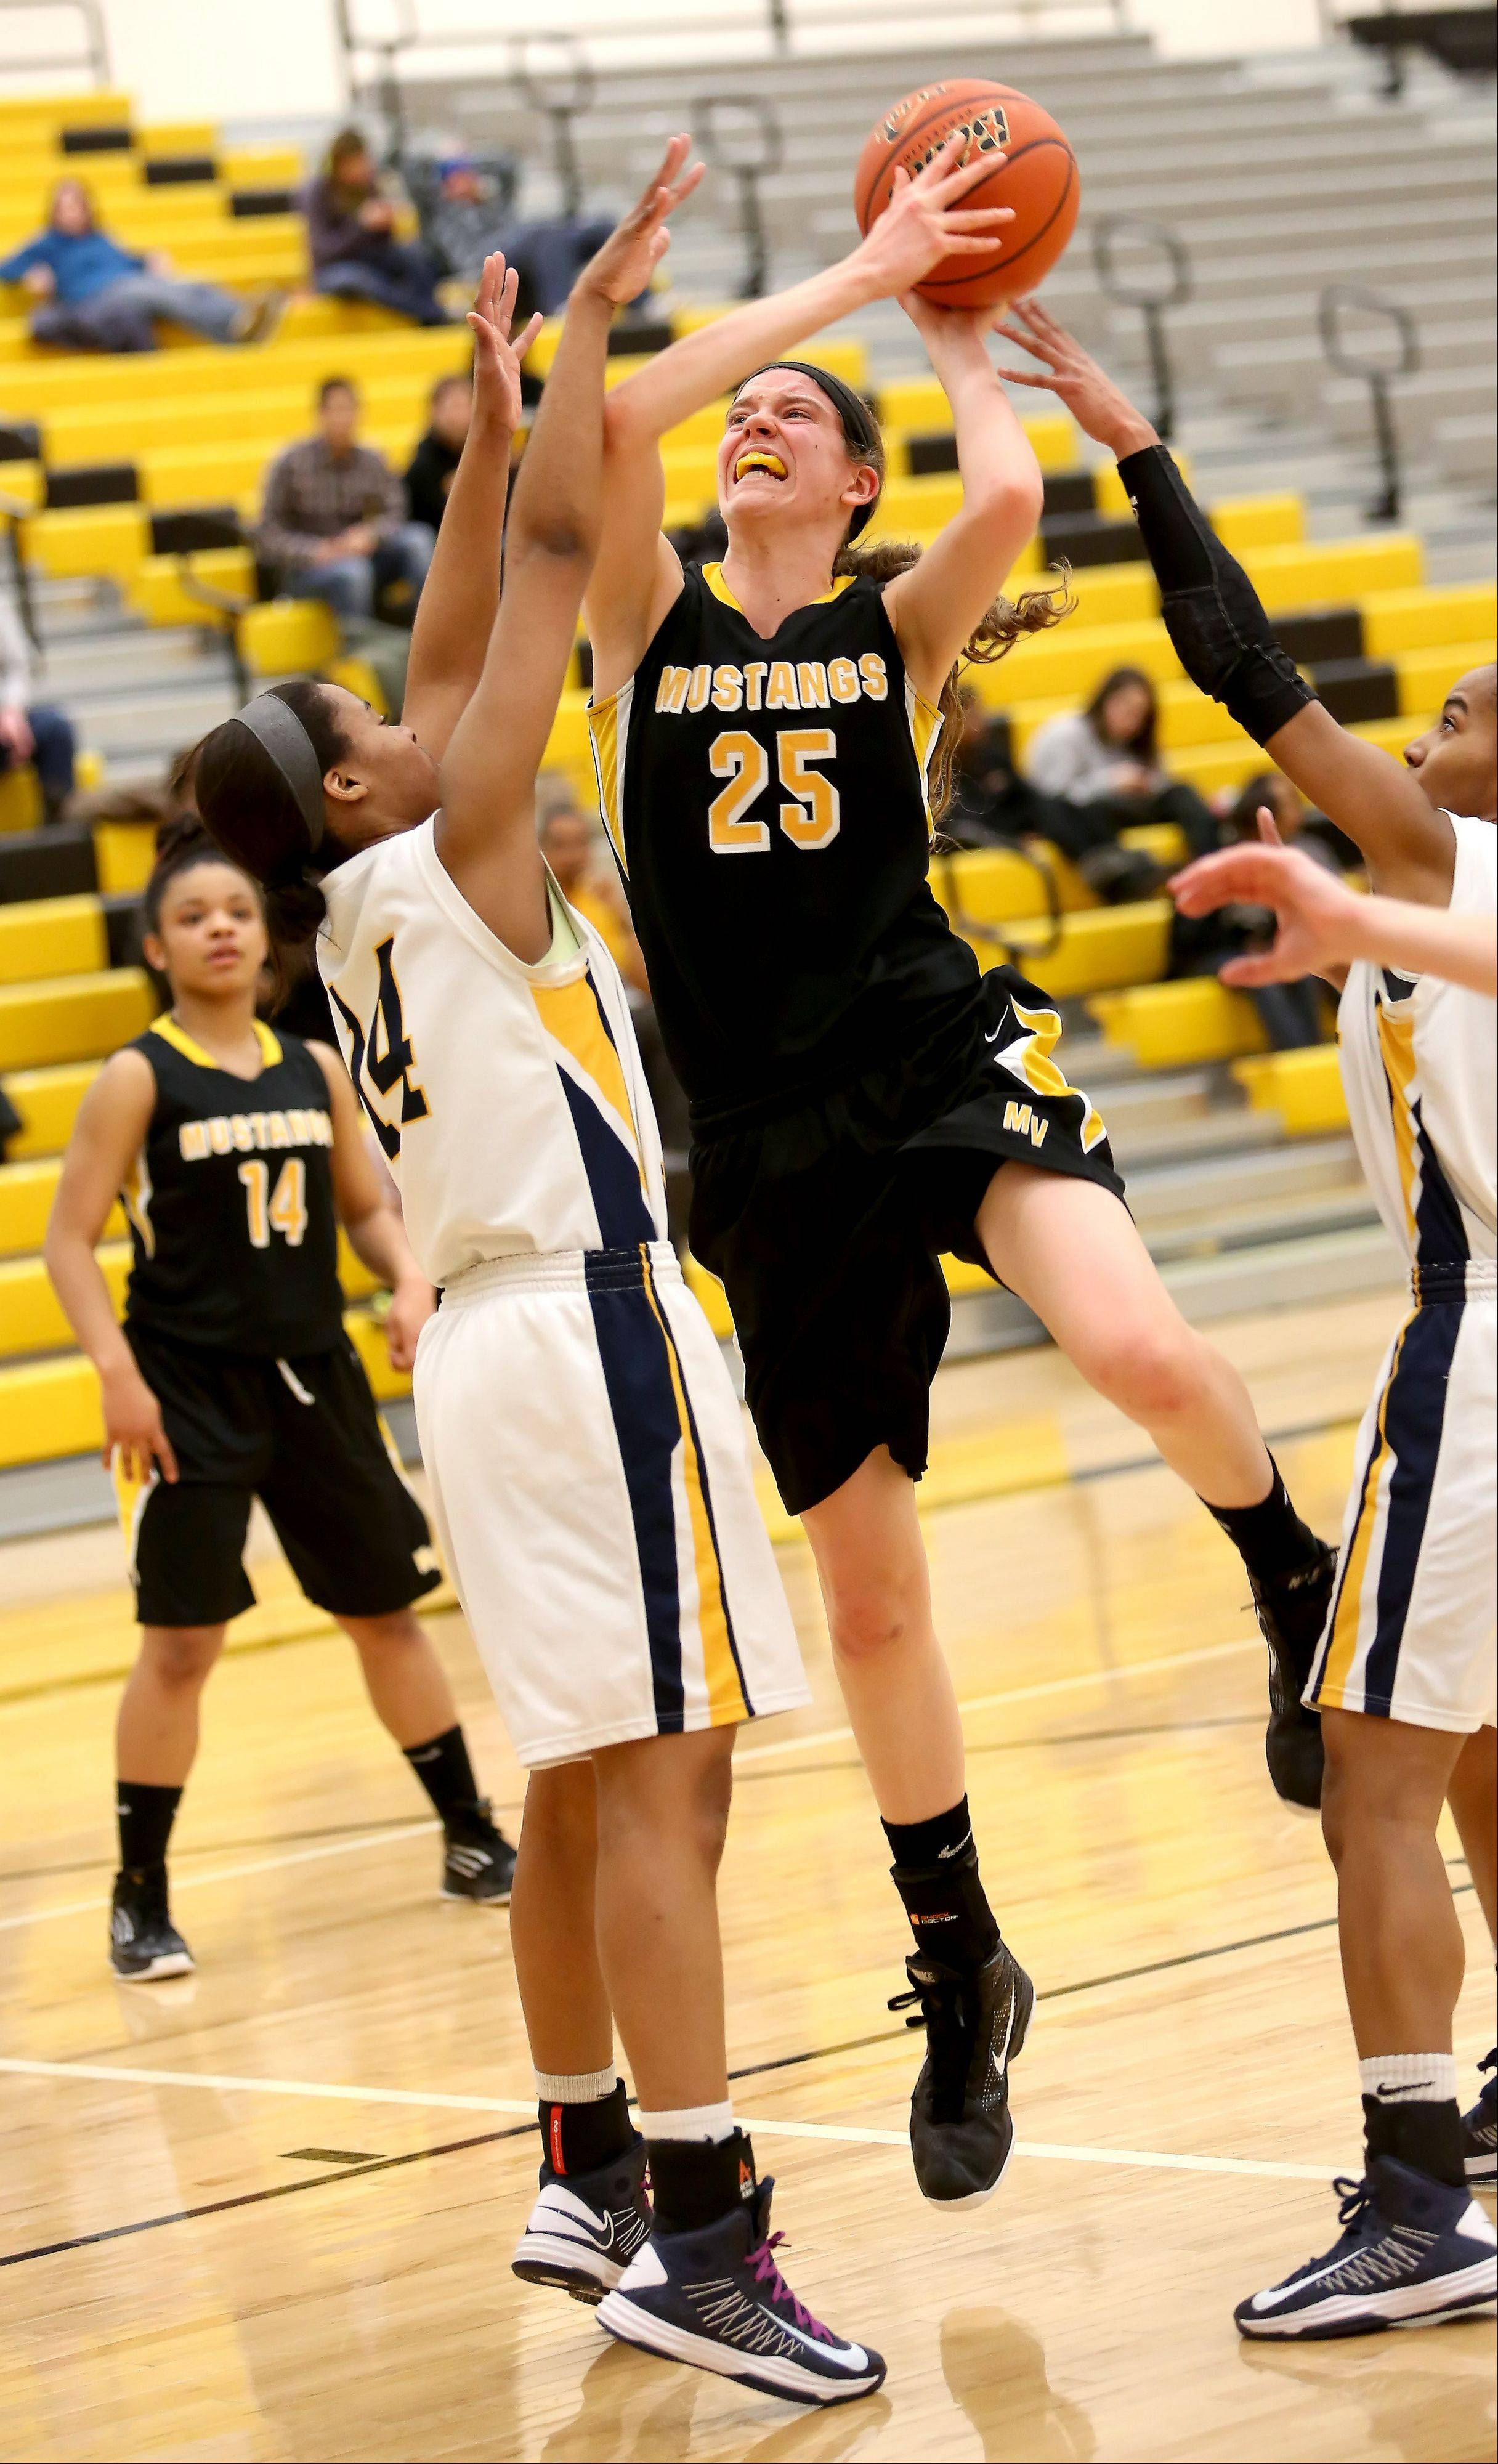 Lori Obendorf of Metea Valley tries for a basket as Najee Smith of Neuqua Valley defends in girls basketball Class 4A regional final on Friday in Aurora.